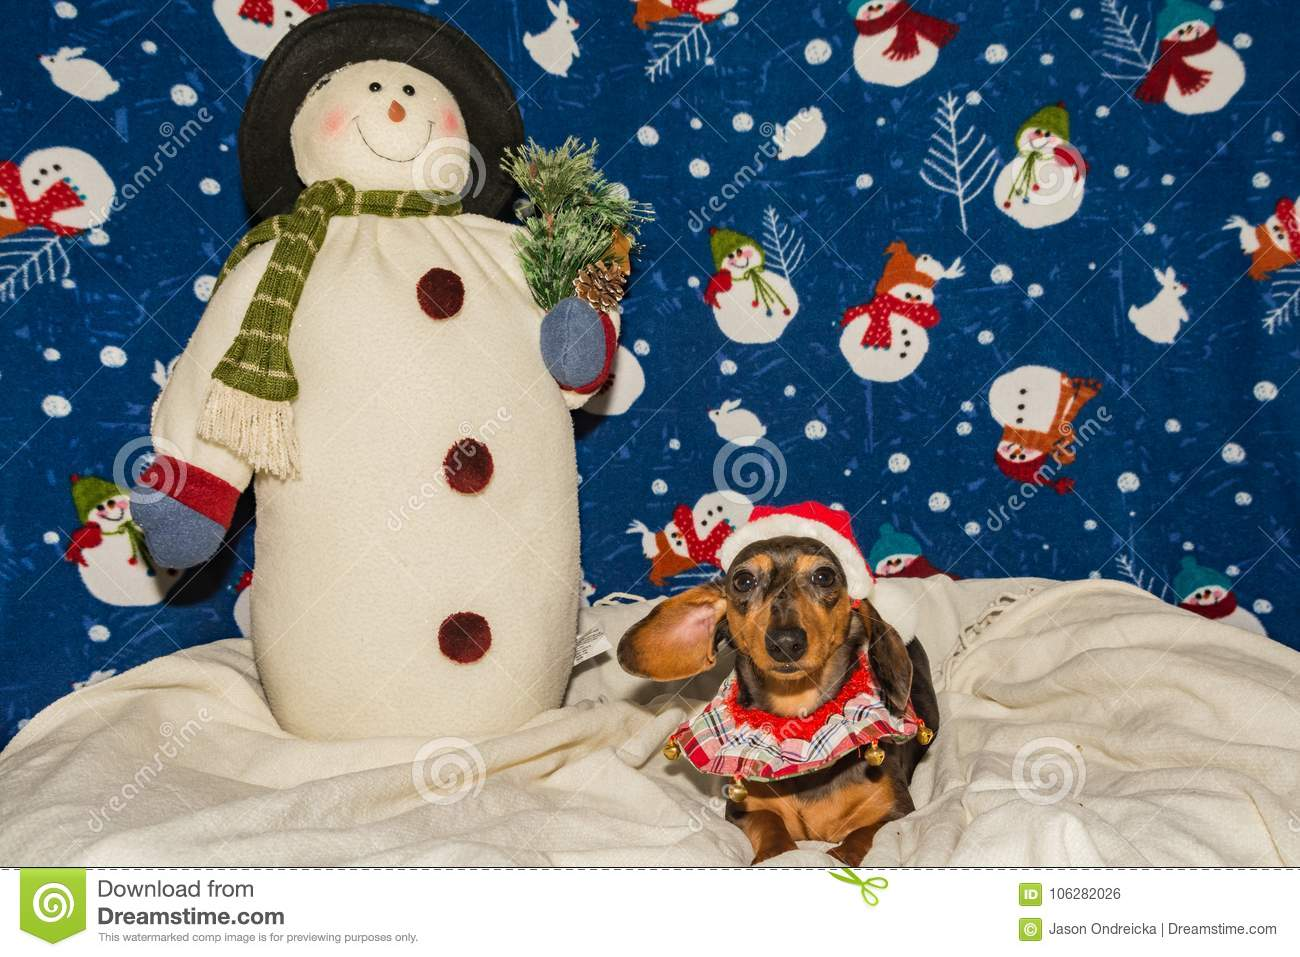 An Adorable Dachshund Puppy In A Santa Hat Stock Photo Image Of Happiness Blue 106282026